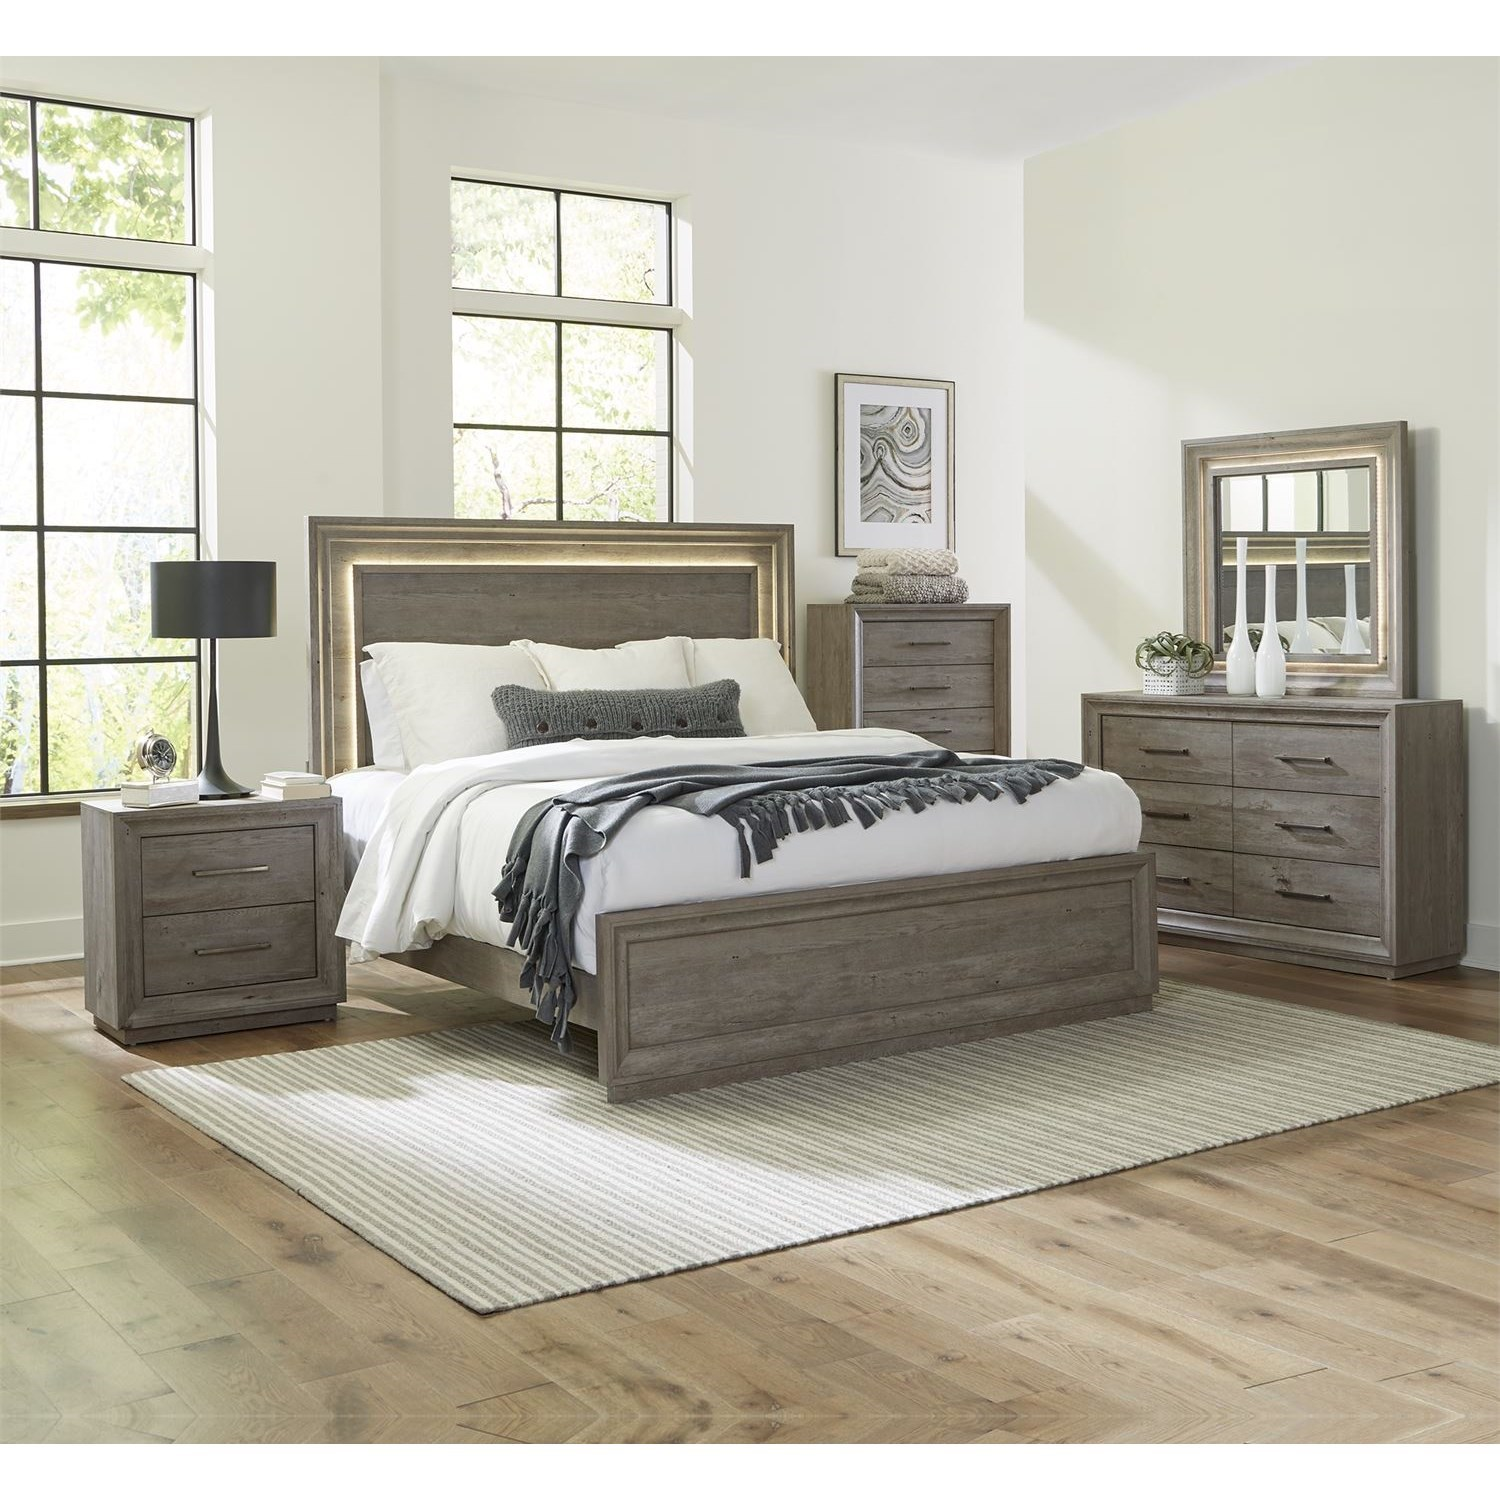 Horizons King Bedroom Group by Liberty Furniture at Northeast Factory Direct